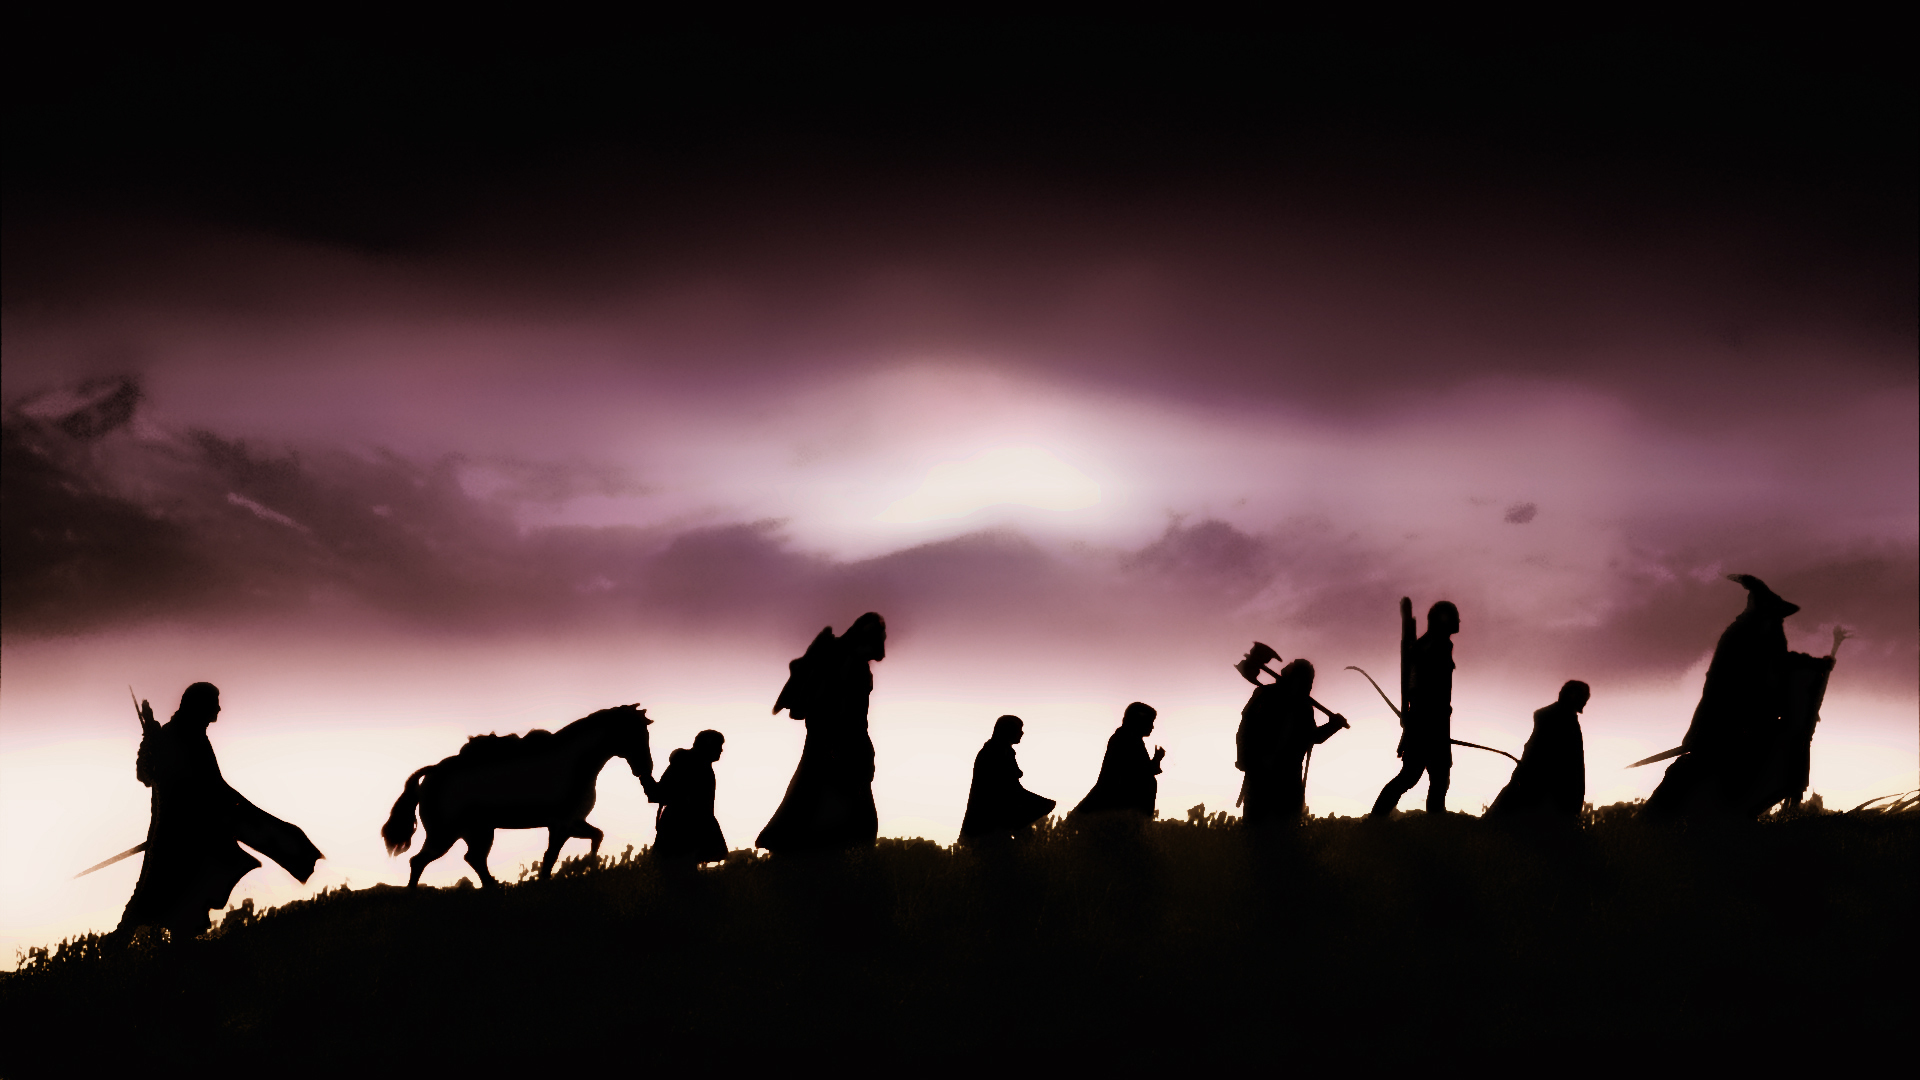 The cast of The Fellowship of the Rings, silhouetted against a cloudy, purple sky.